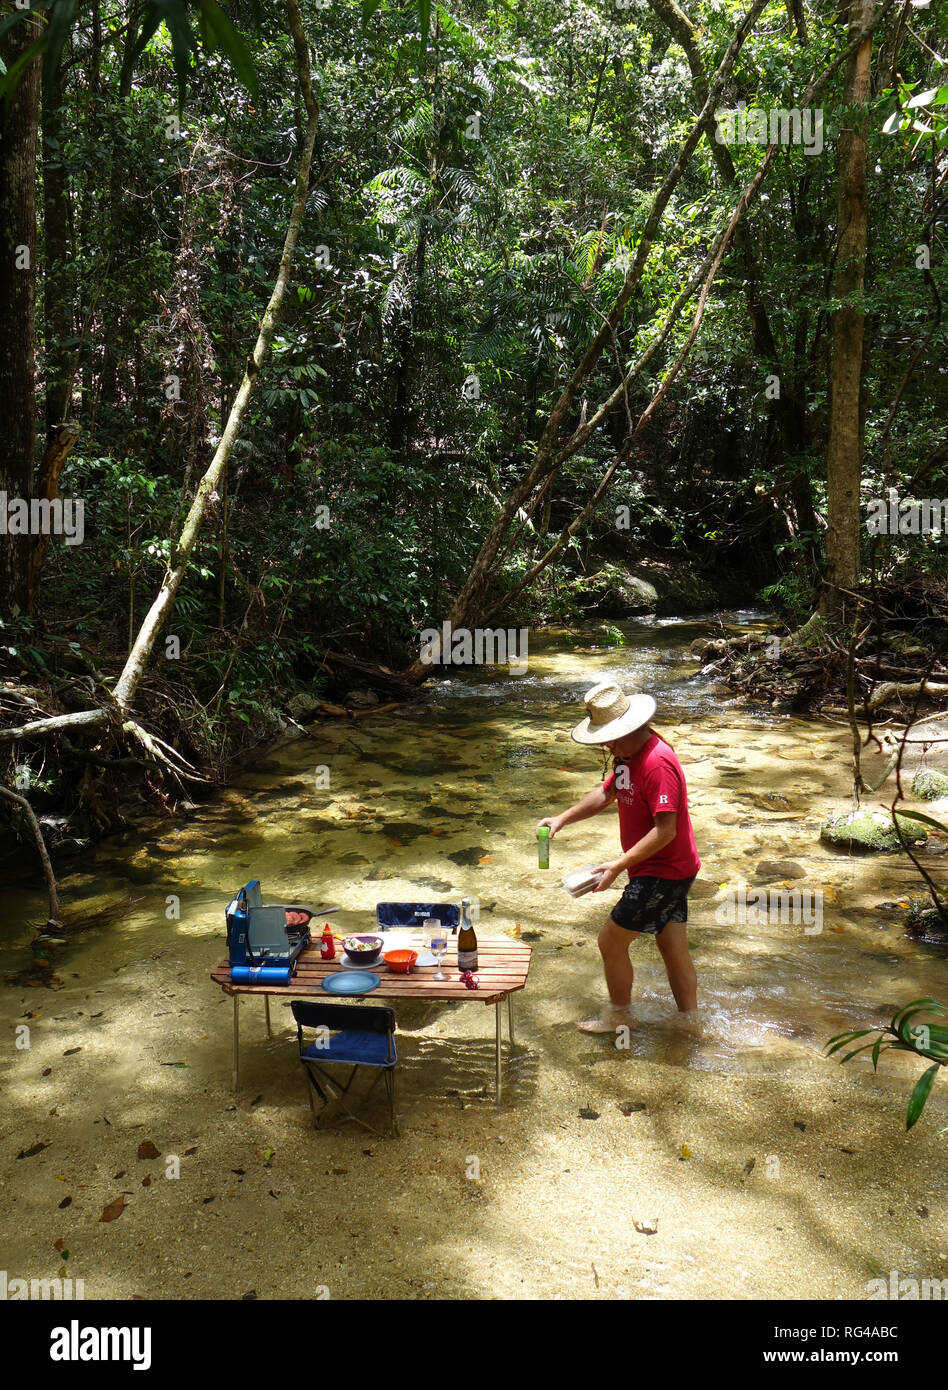 Picnic table with BBQ set up in rainforest creek, Dinden National Park, near Cairns, Queensland, Australia. No MR or PR Stock Photo